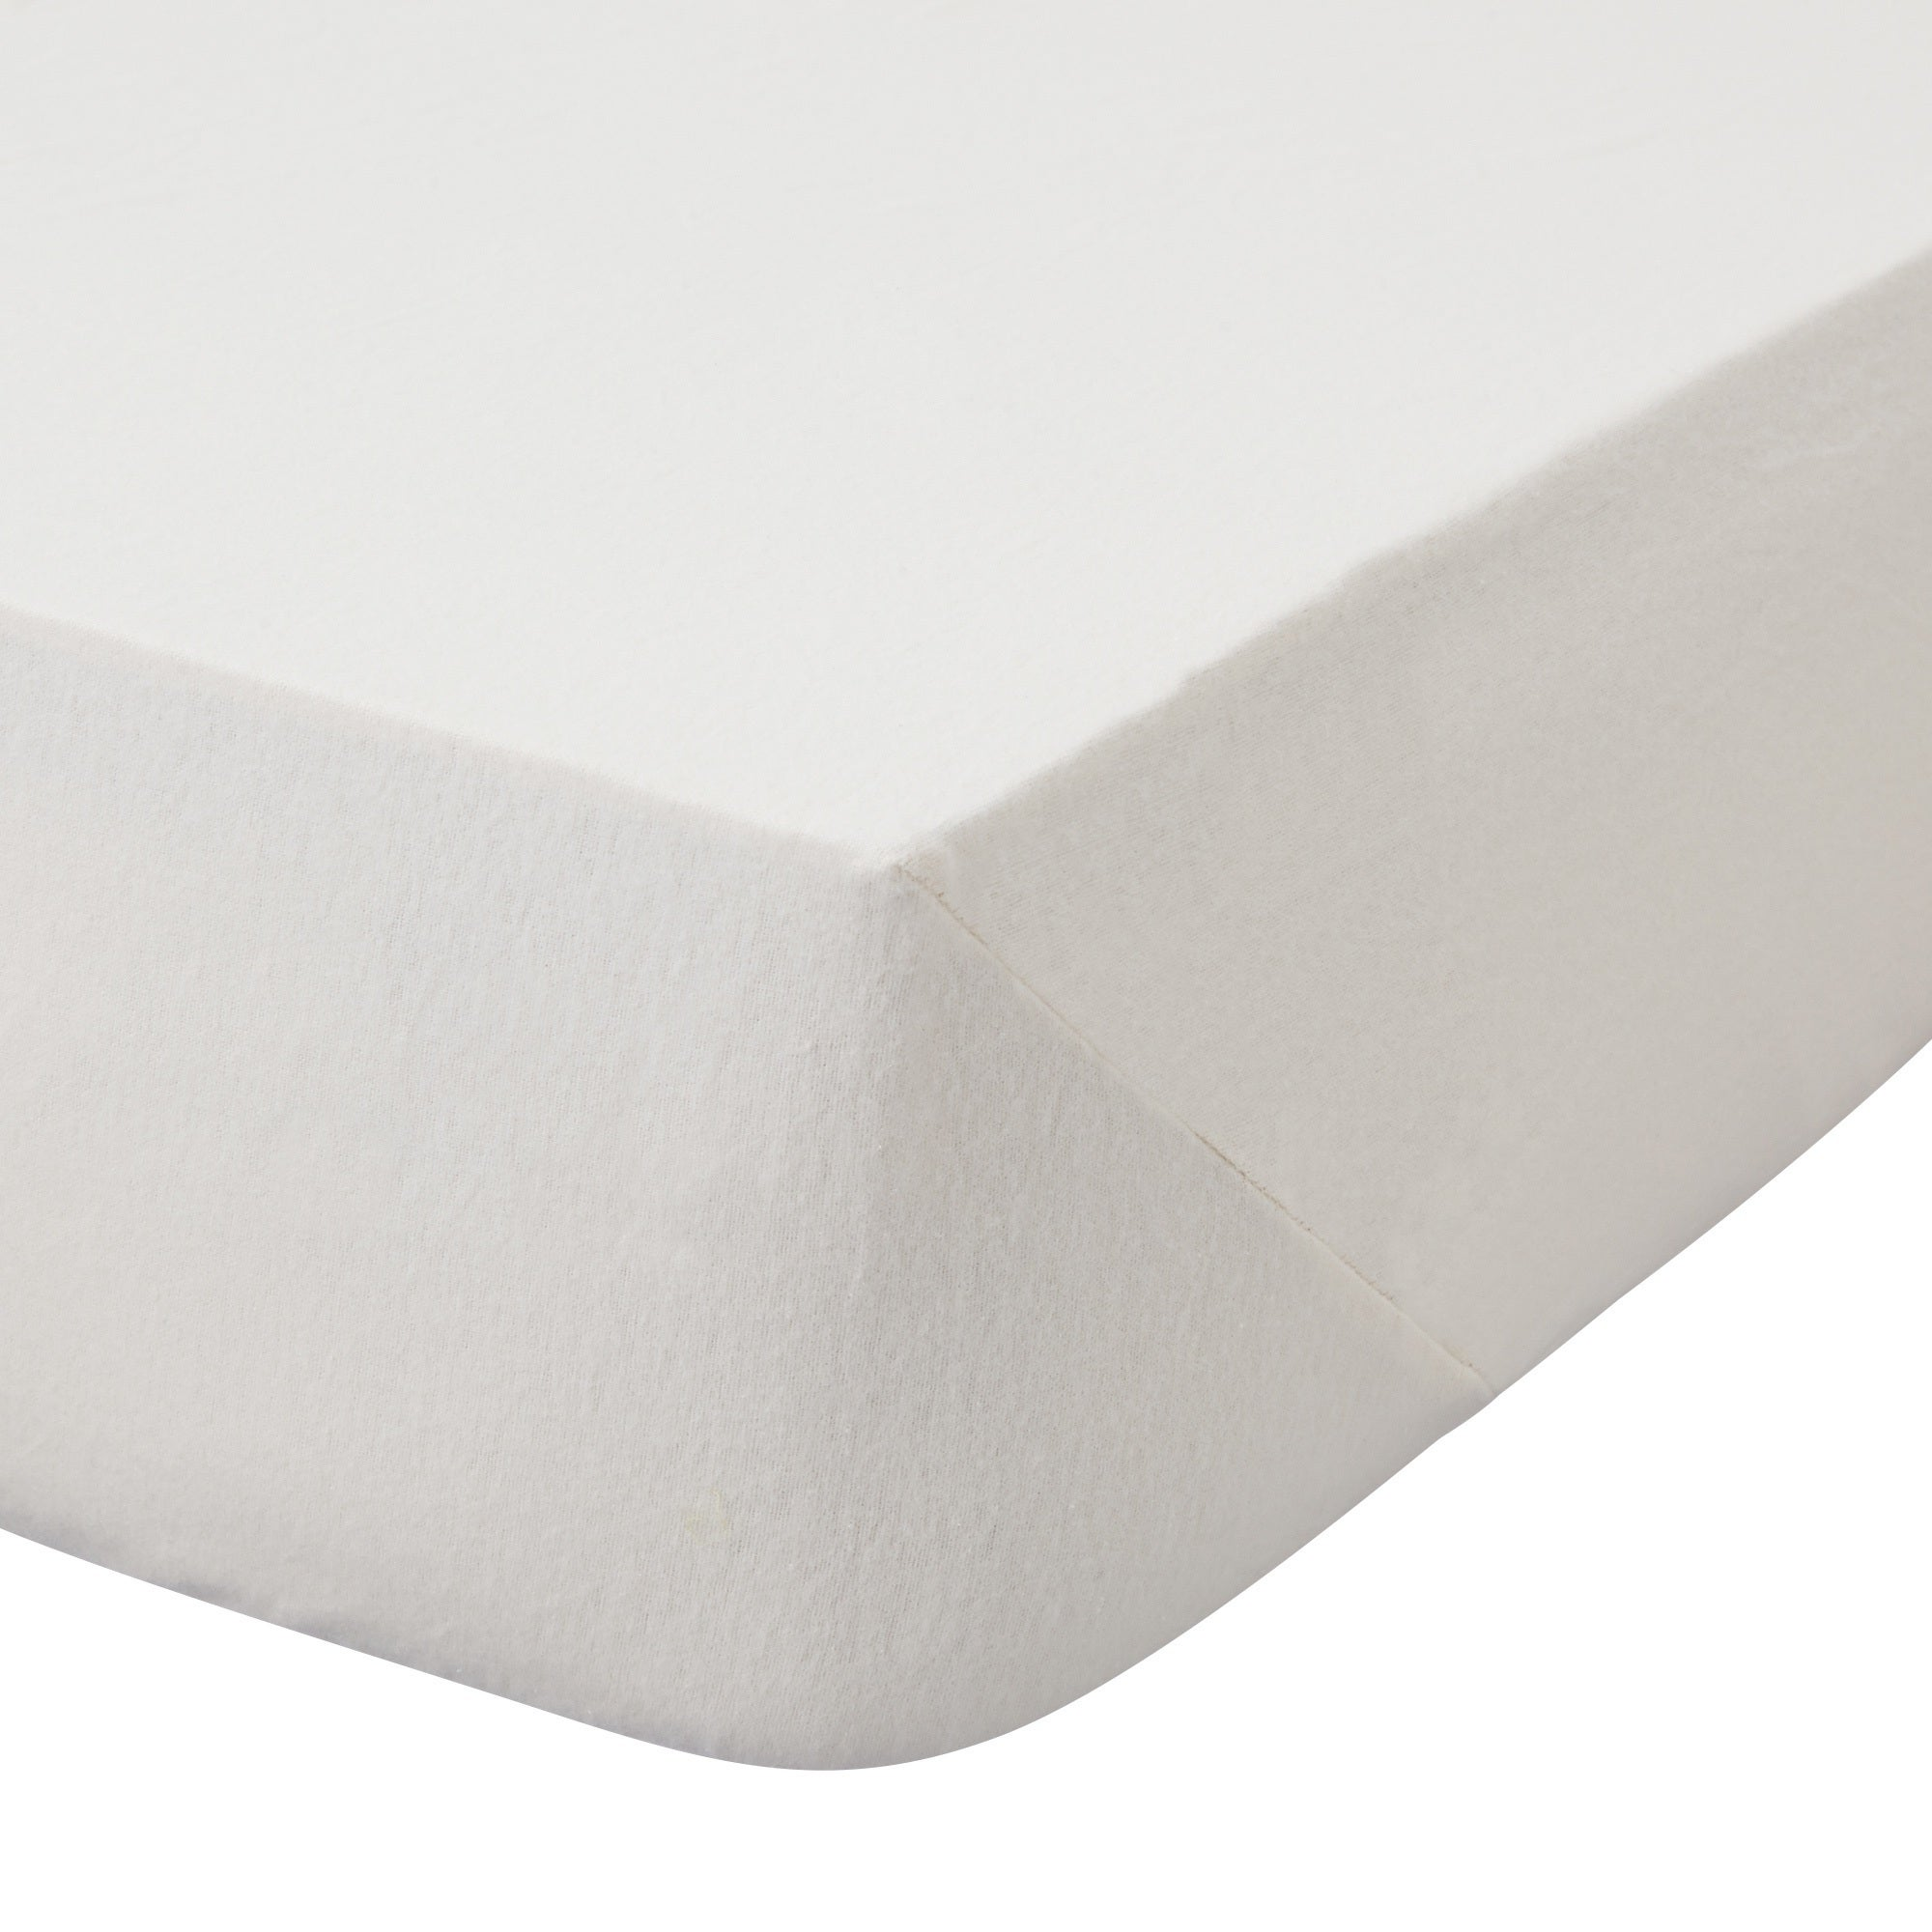 Image of 100% Brushed Cotton 25cm Cream Fitted Sheet Cream